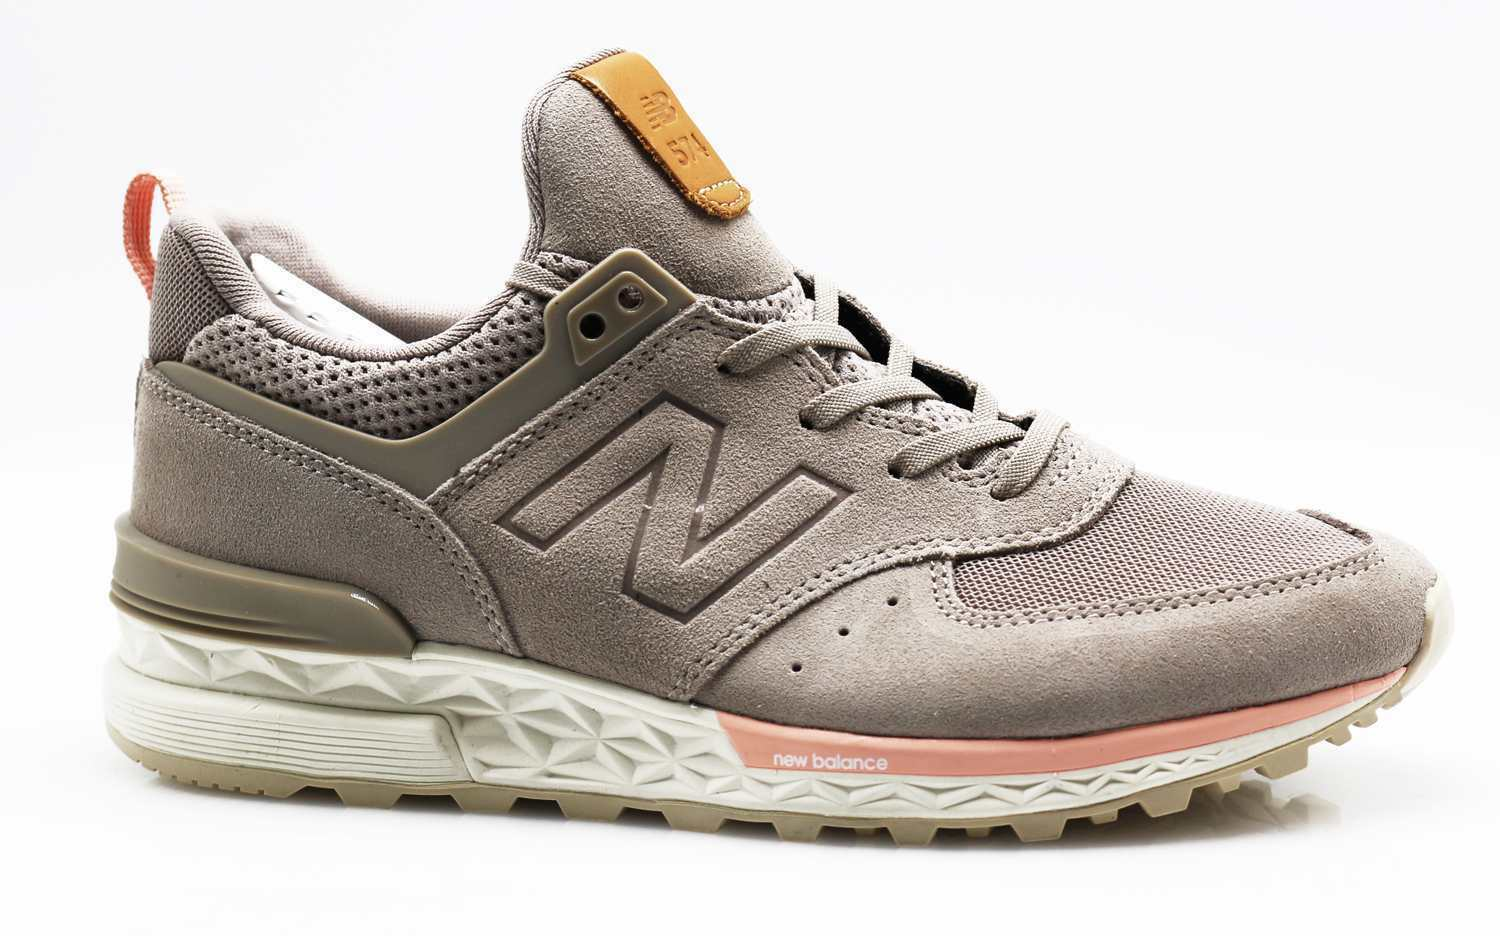 NEW Balance  ws574 Sport Lifestyle Sneaker Running shoes b16 184 Size 37,5  wholesale cheap